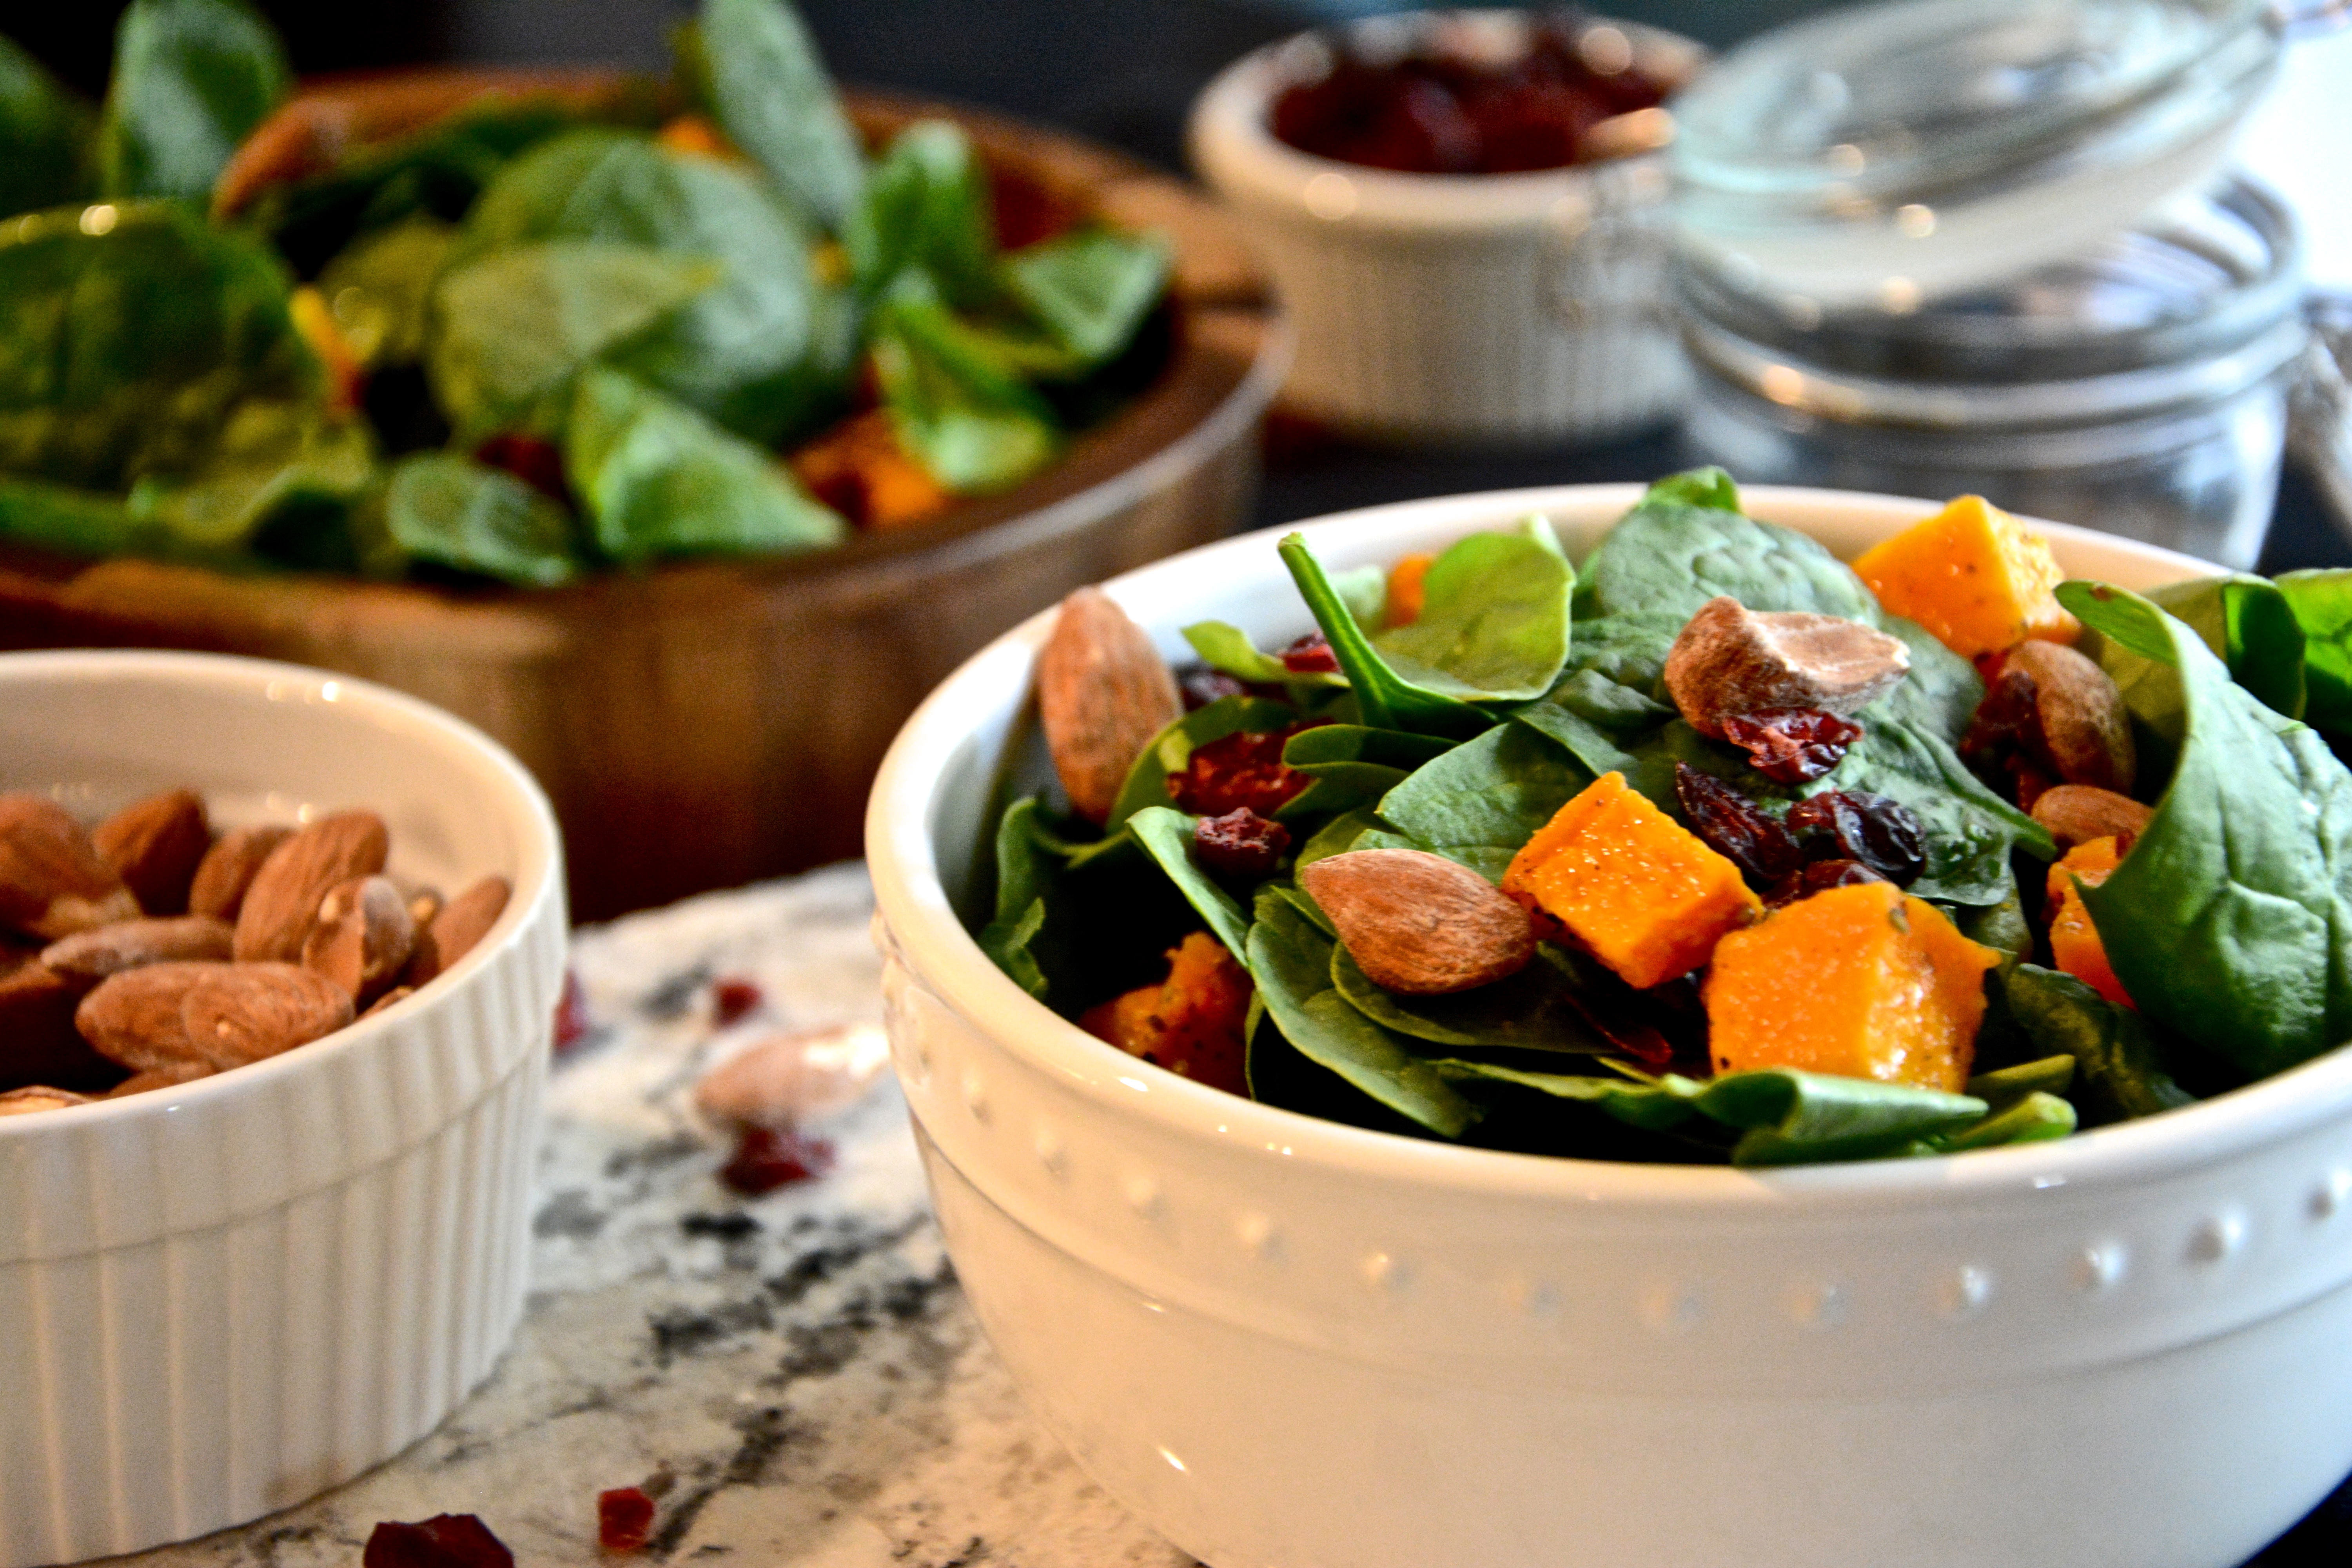 Autumn Salad with Butternut Squash and Maple Balsamic Vingairette